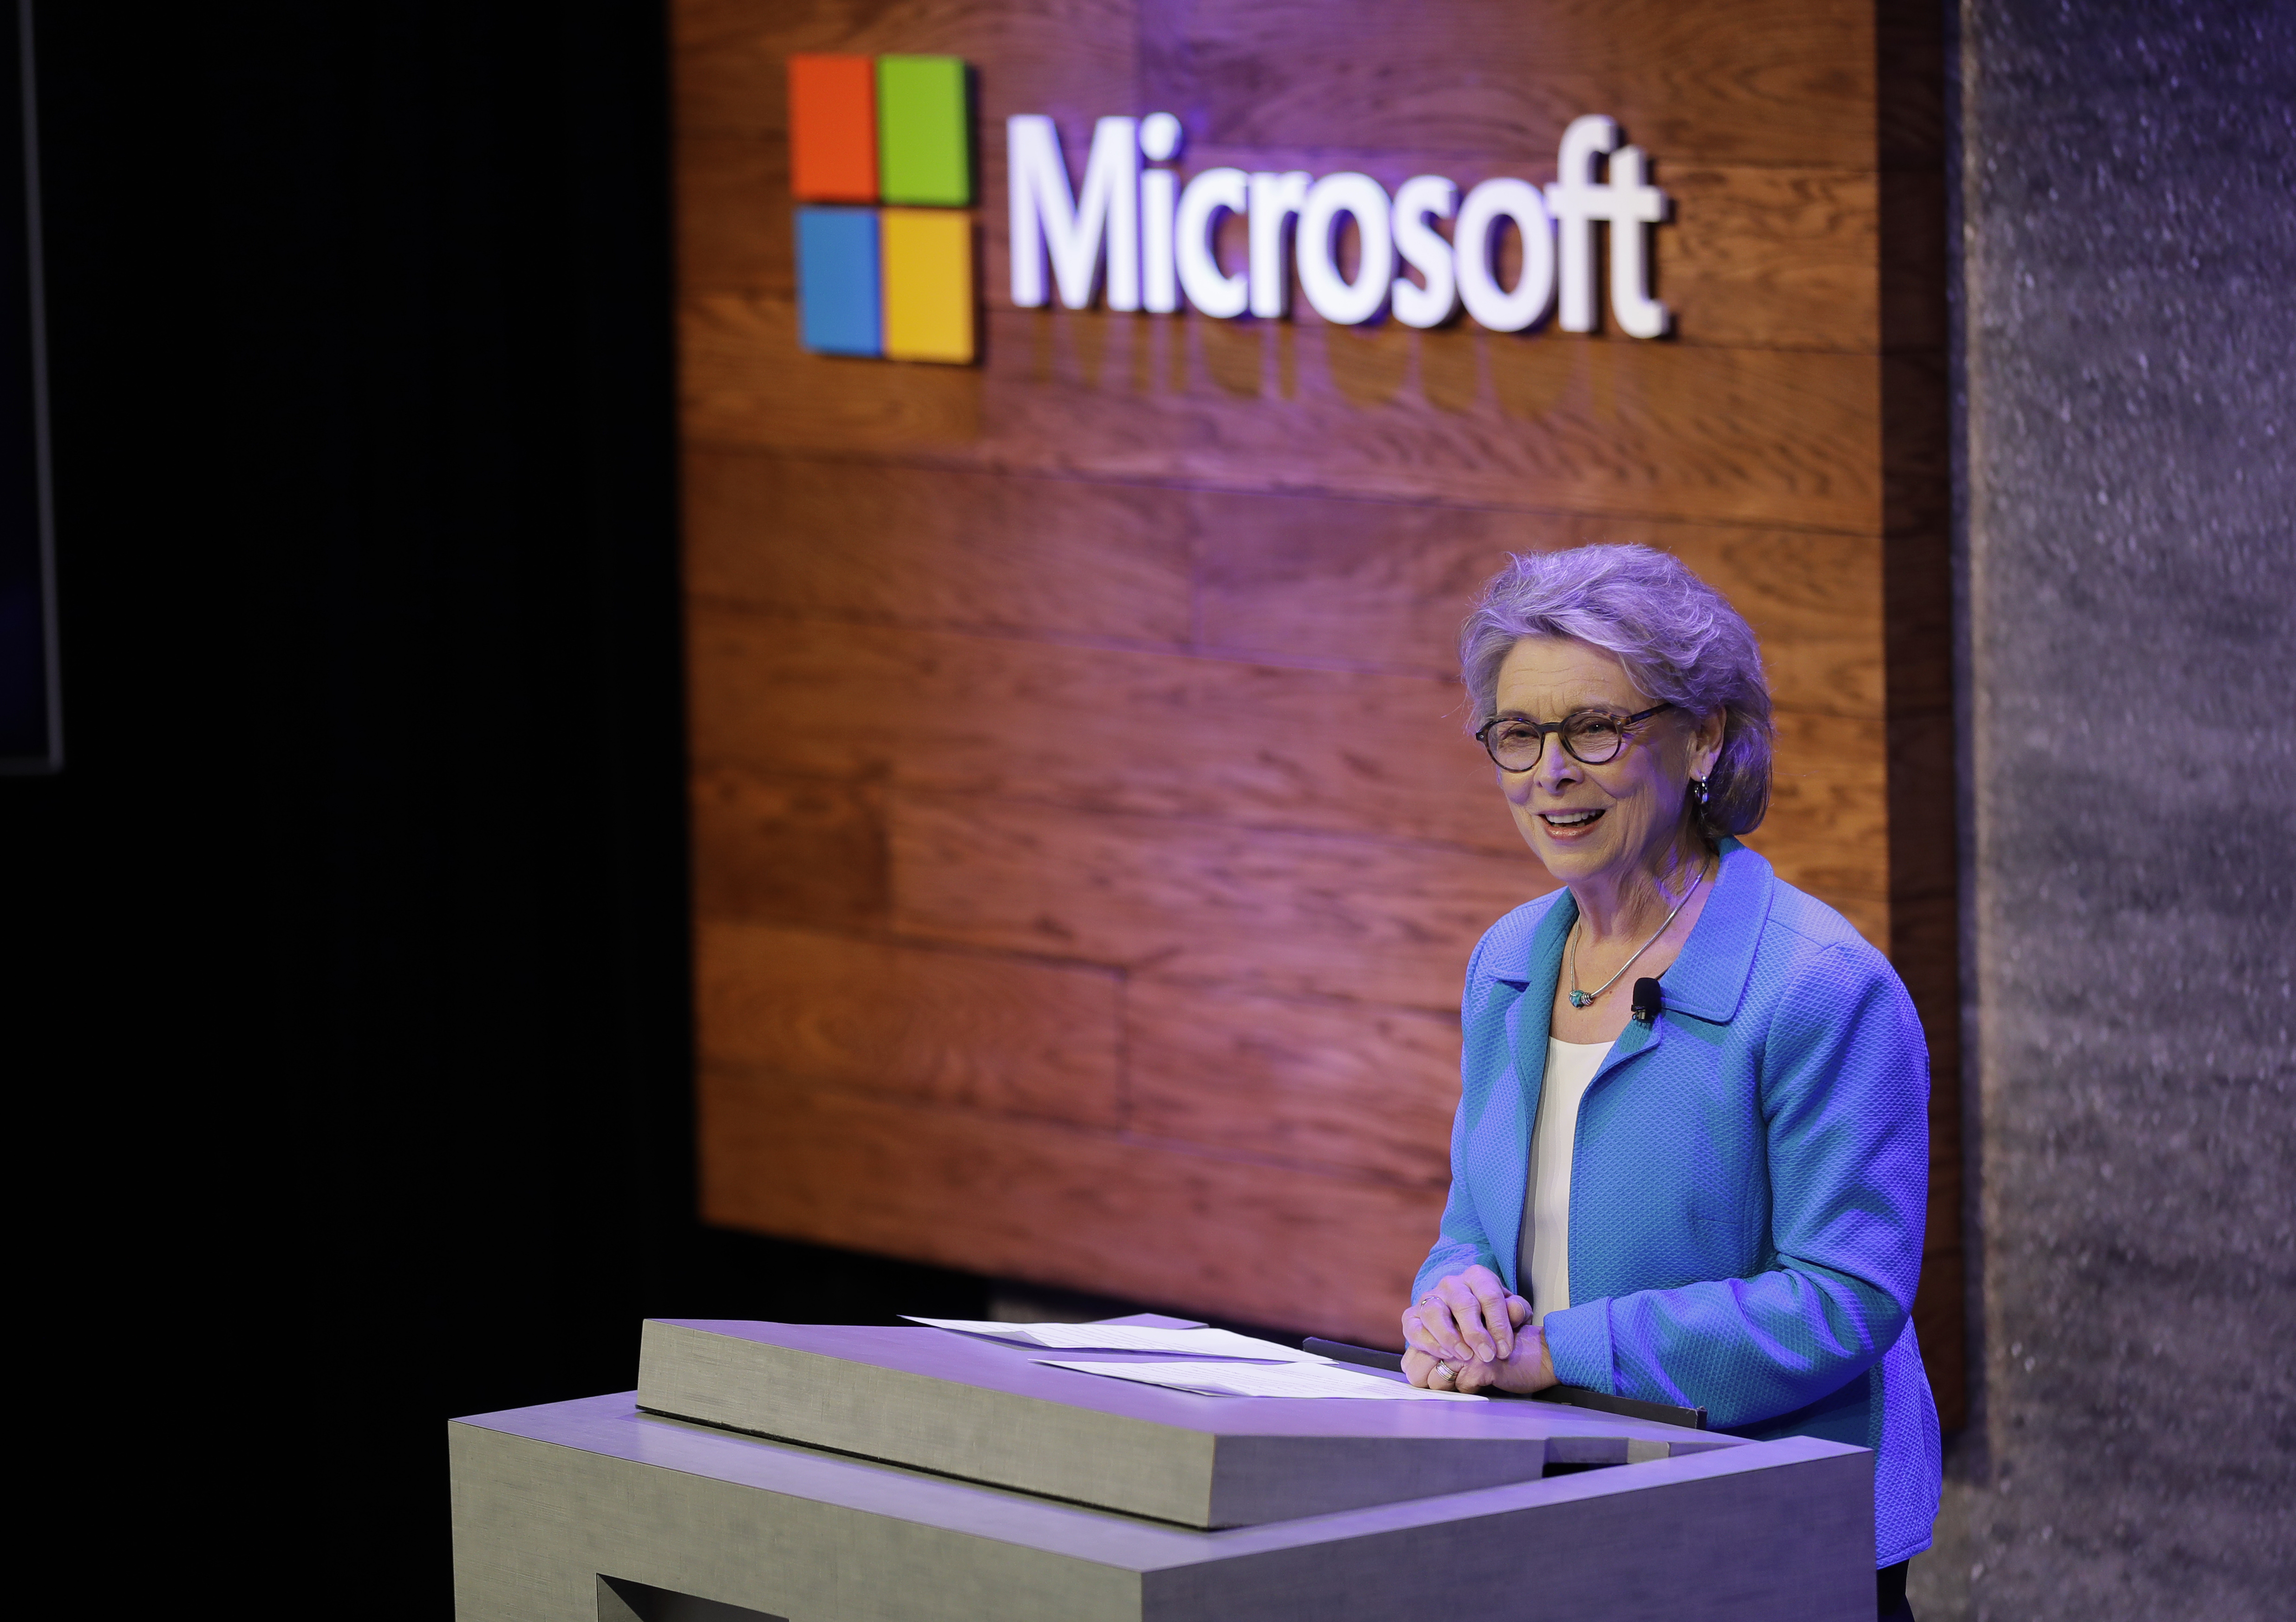 Former Washington Gov. Christine Gregoire, CEO of the Challenge Seattle organization, speaks Thursday, Jan. 17, 2019, during a news conference in Bellevue, Wash., to announce a $500 million pledge by Microsoft Corp. to develop affordable housing for low- and middle-income workers in response to the Seattle region's widening affordability gap and to also to address homelessness. (AP Photo/Ted S. Warren)